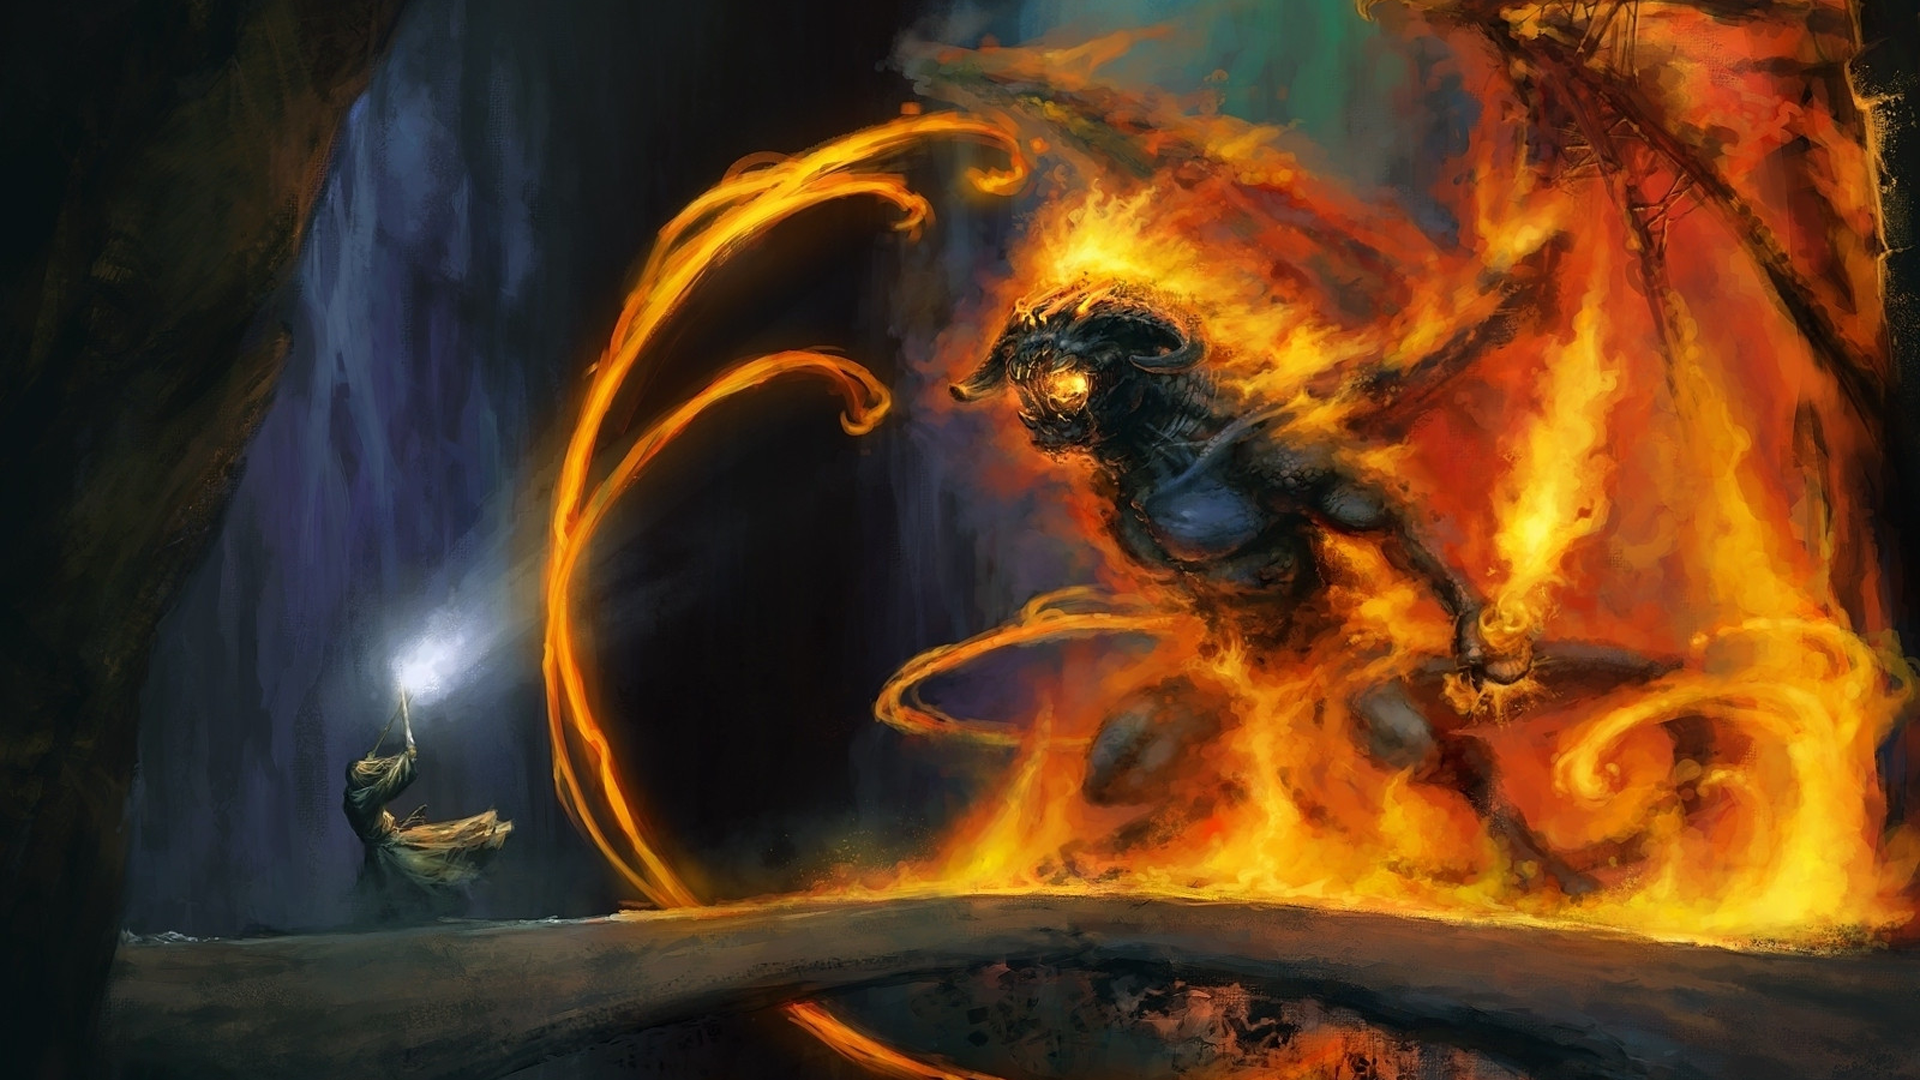 Lord Of The Rings Wallpaper Balrog 85542 1920x1080